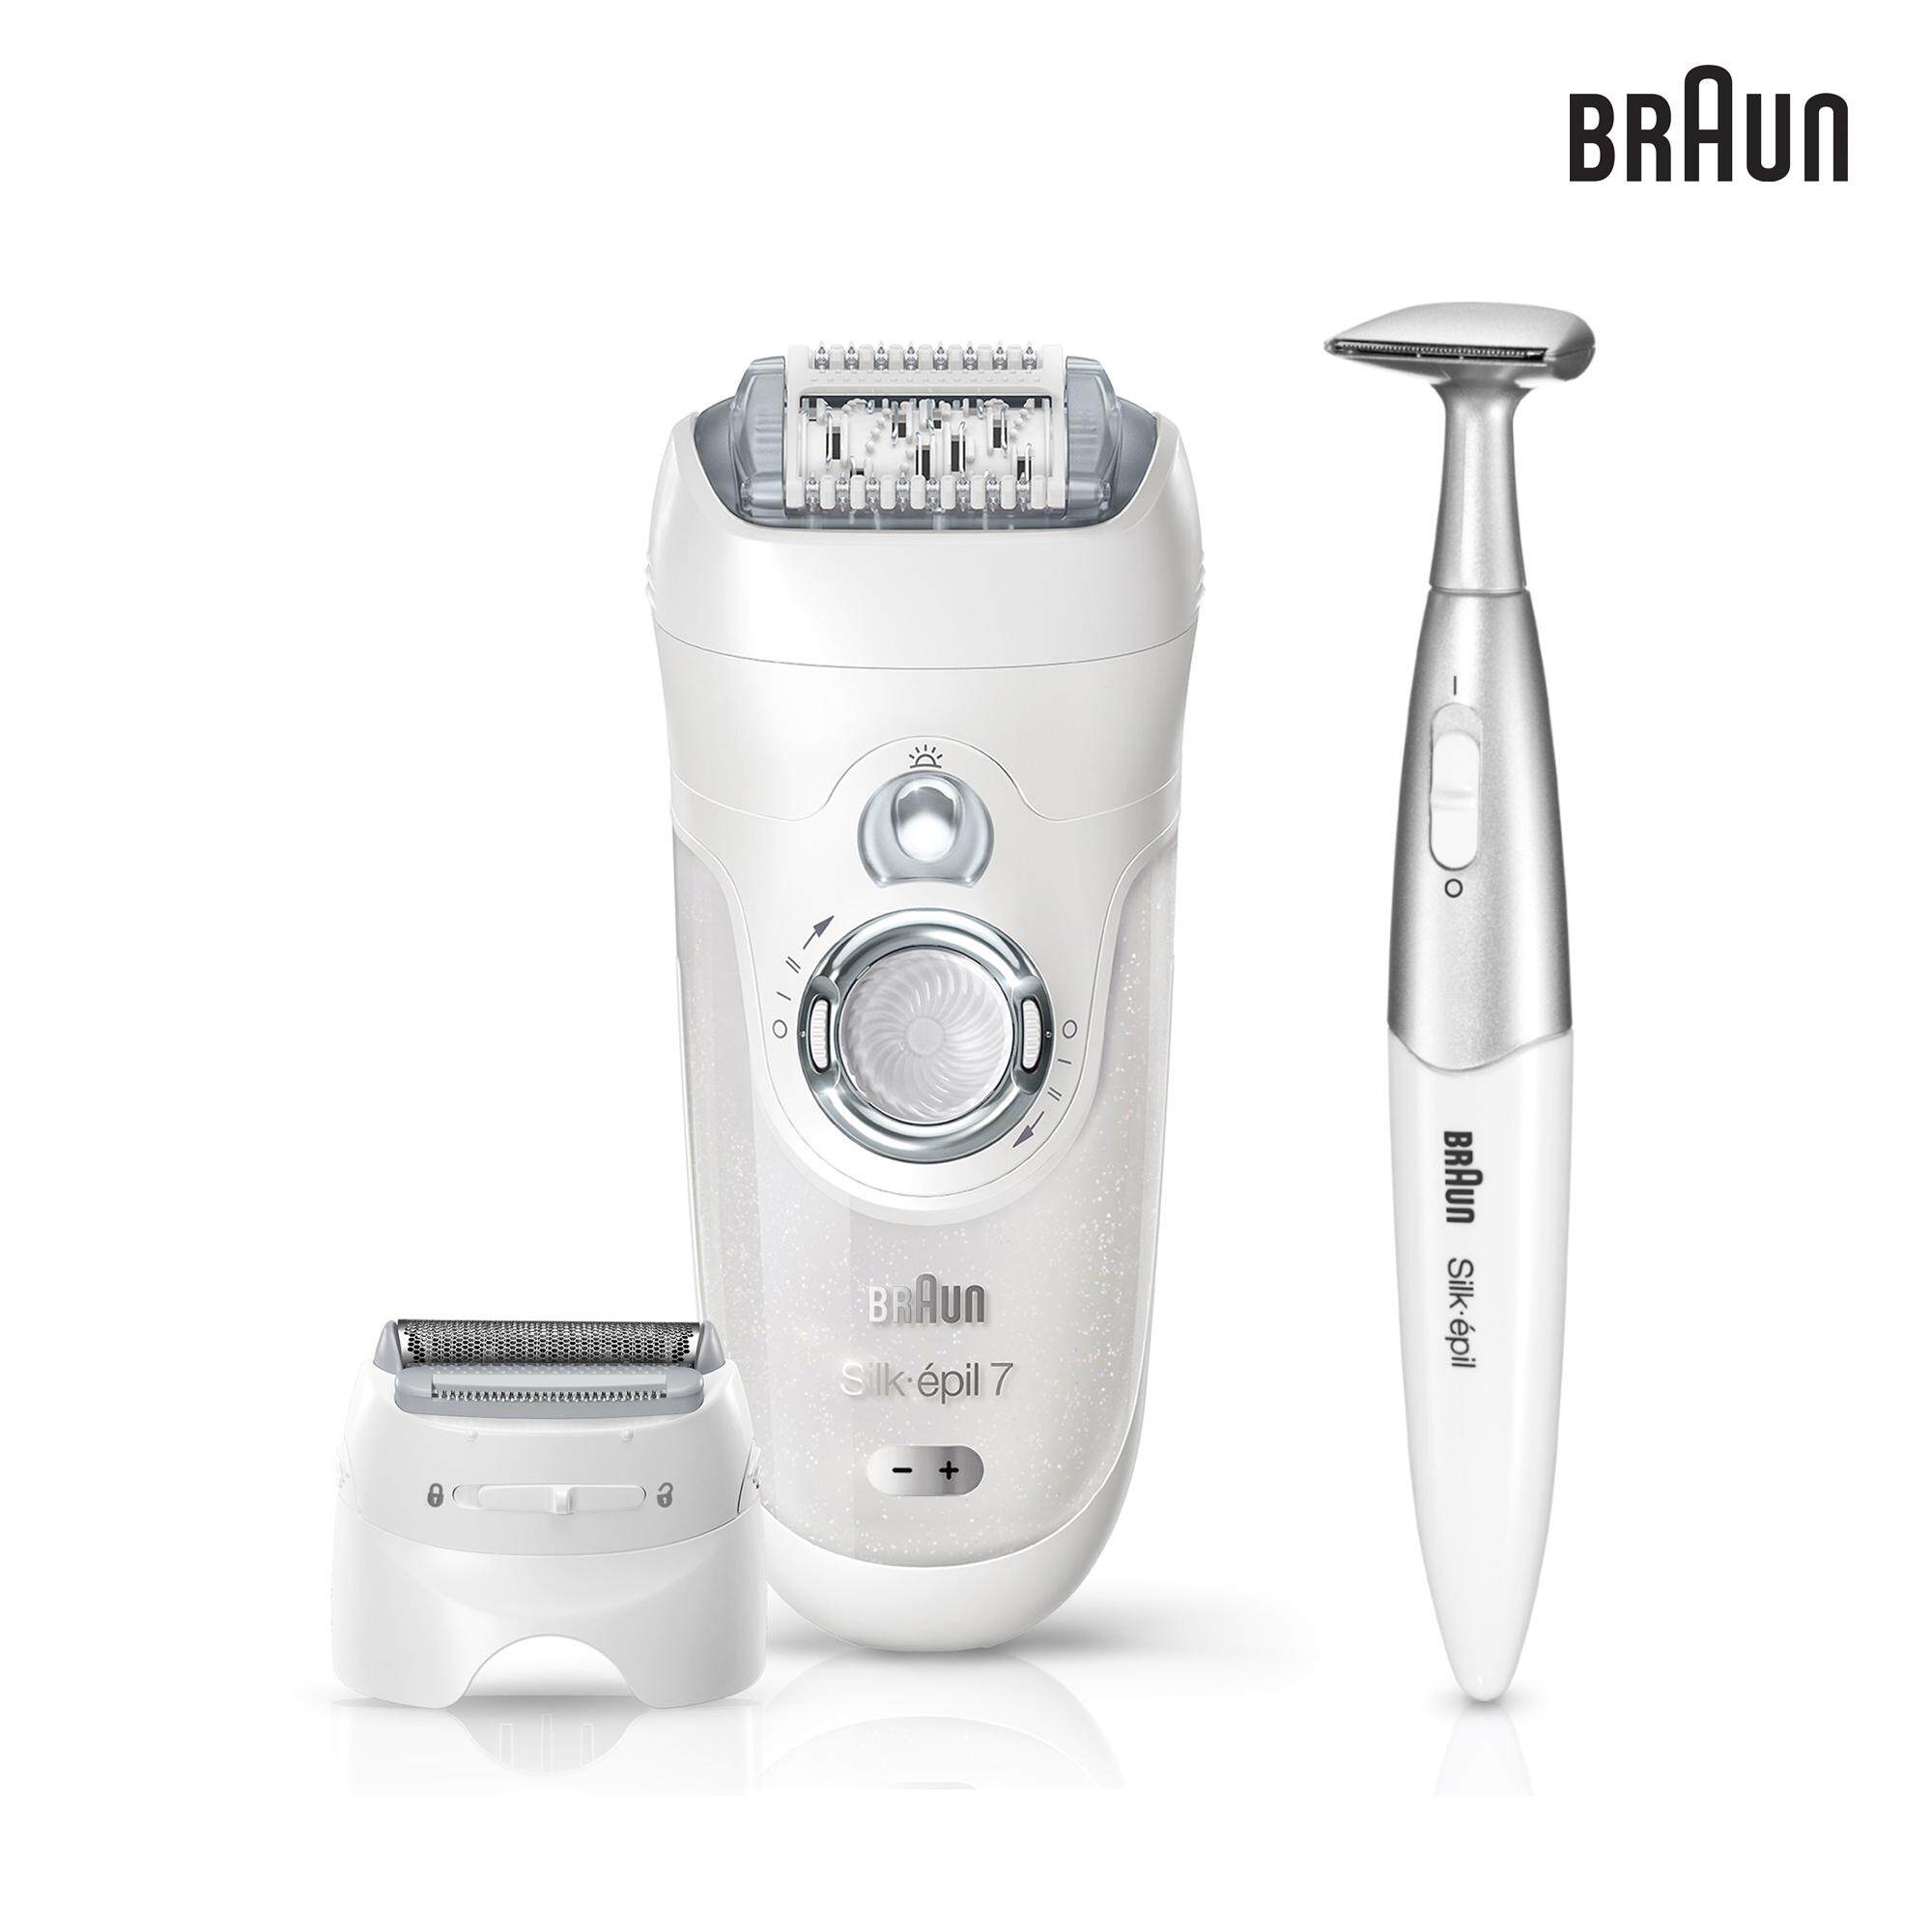 Braun Silk-épil 7 7-561 - Wet & Dry Cordless Epilator with 6 Extras including a shaver head and trimmer cap